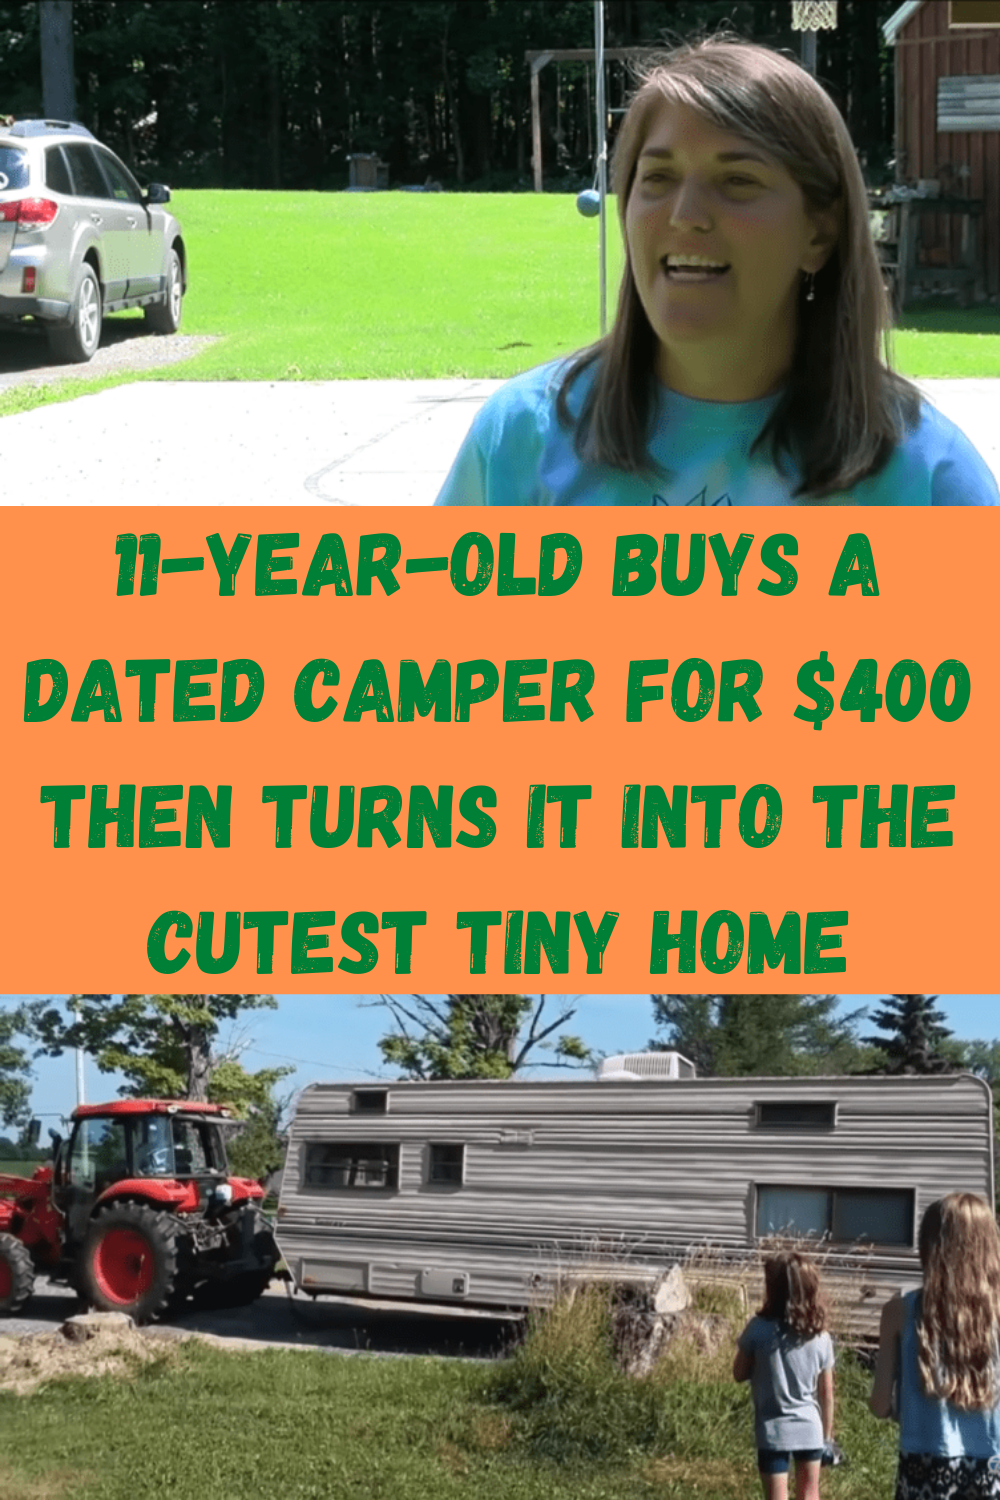 11 Year Old Buys A Dated Camper For $400 Then Turns It Into The Cutest Tiny Home